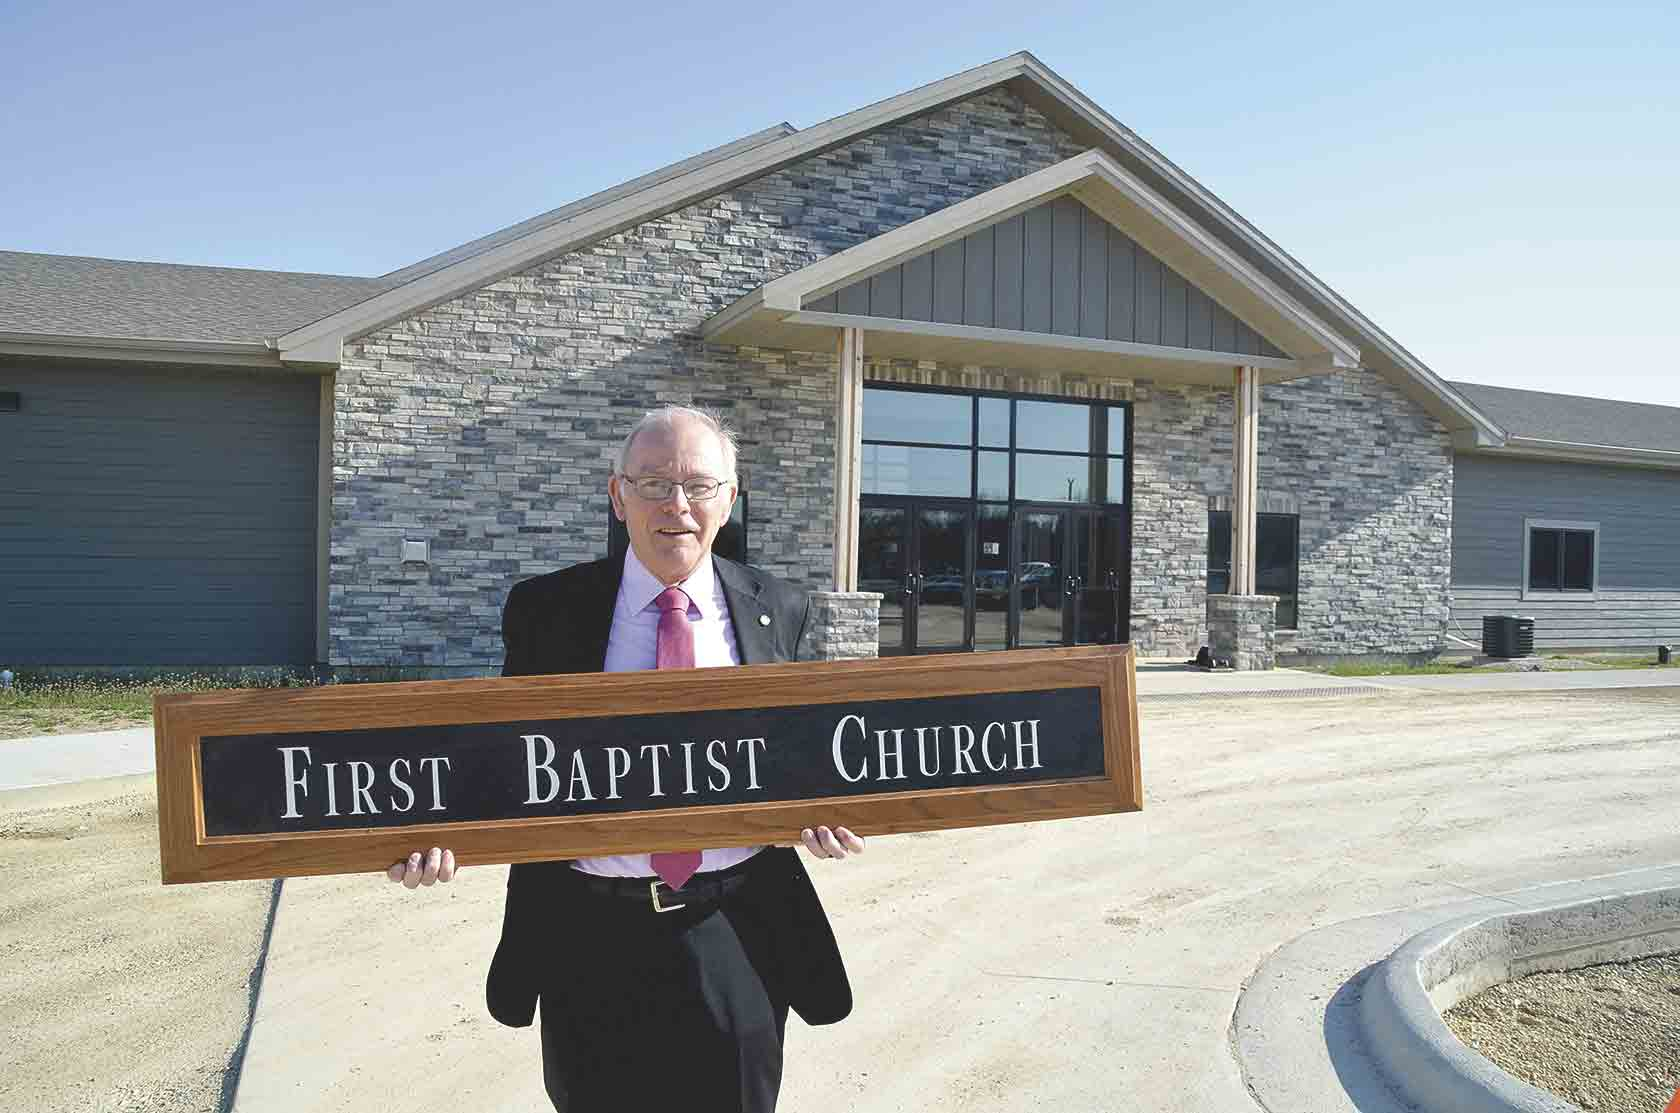 After 47 years in Baptist ministry, 45 as a full-time pastor, First Baptist Church Pastor Lee Boleyn will retire in June. He has enjoyed leading the church he grew up in, which he took over in 2002 after 22 years of service as an Air Force Chaplain.One last sermon...